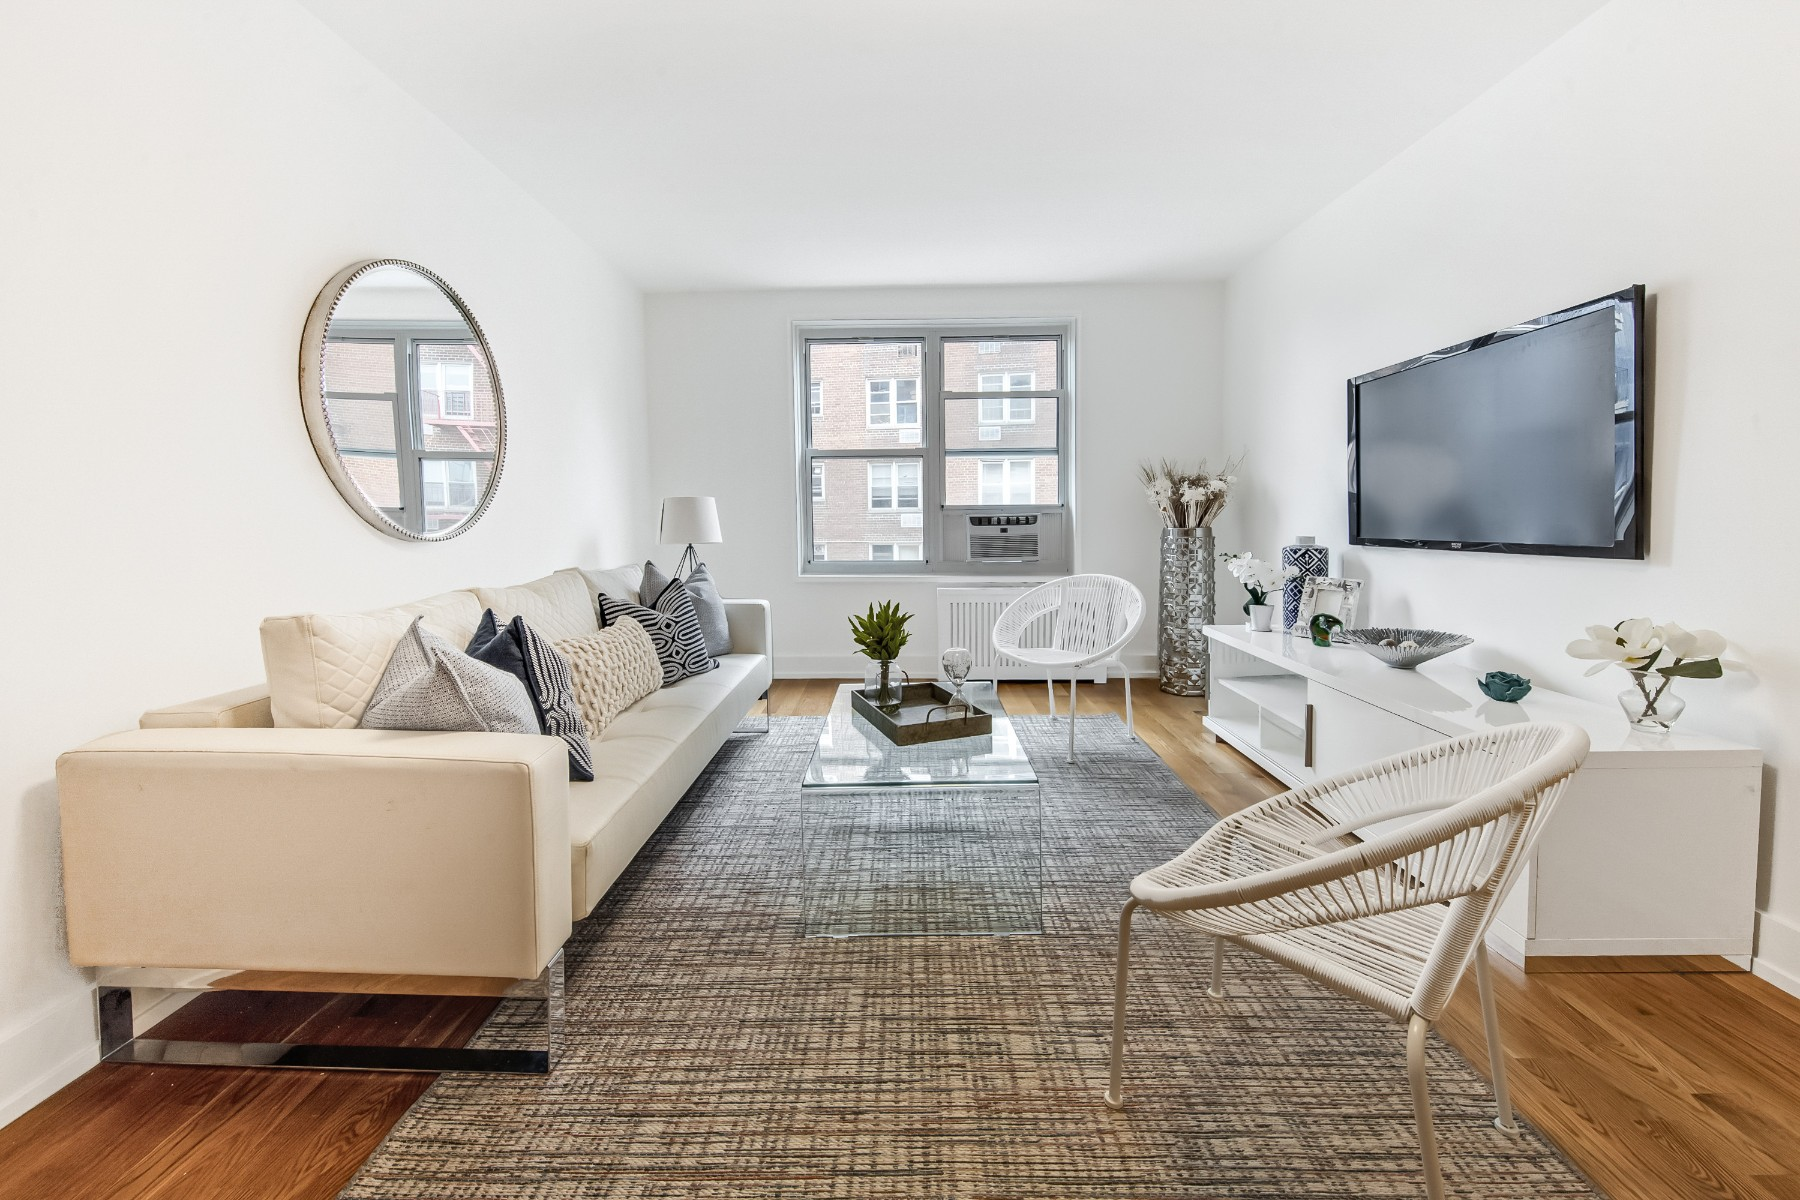 Apartment for sale at 136-04 Cherry Avenue, Apt 3A